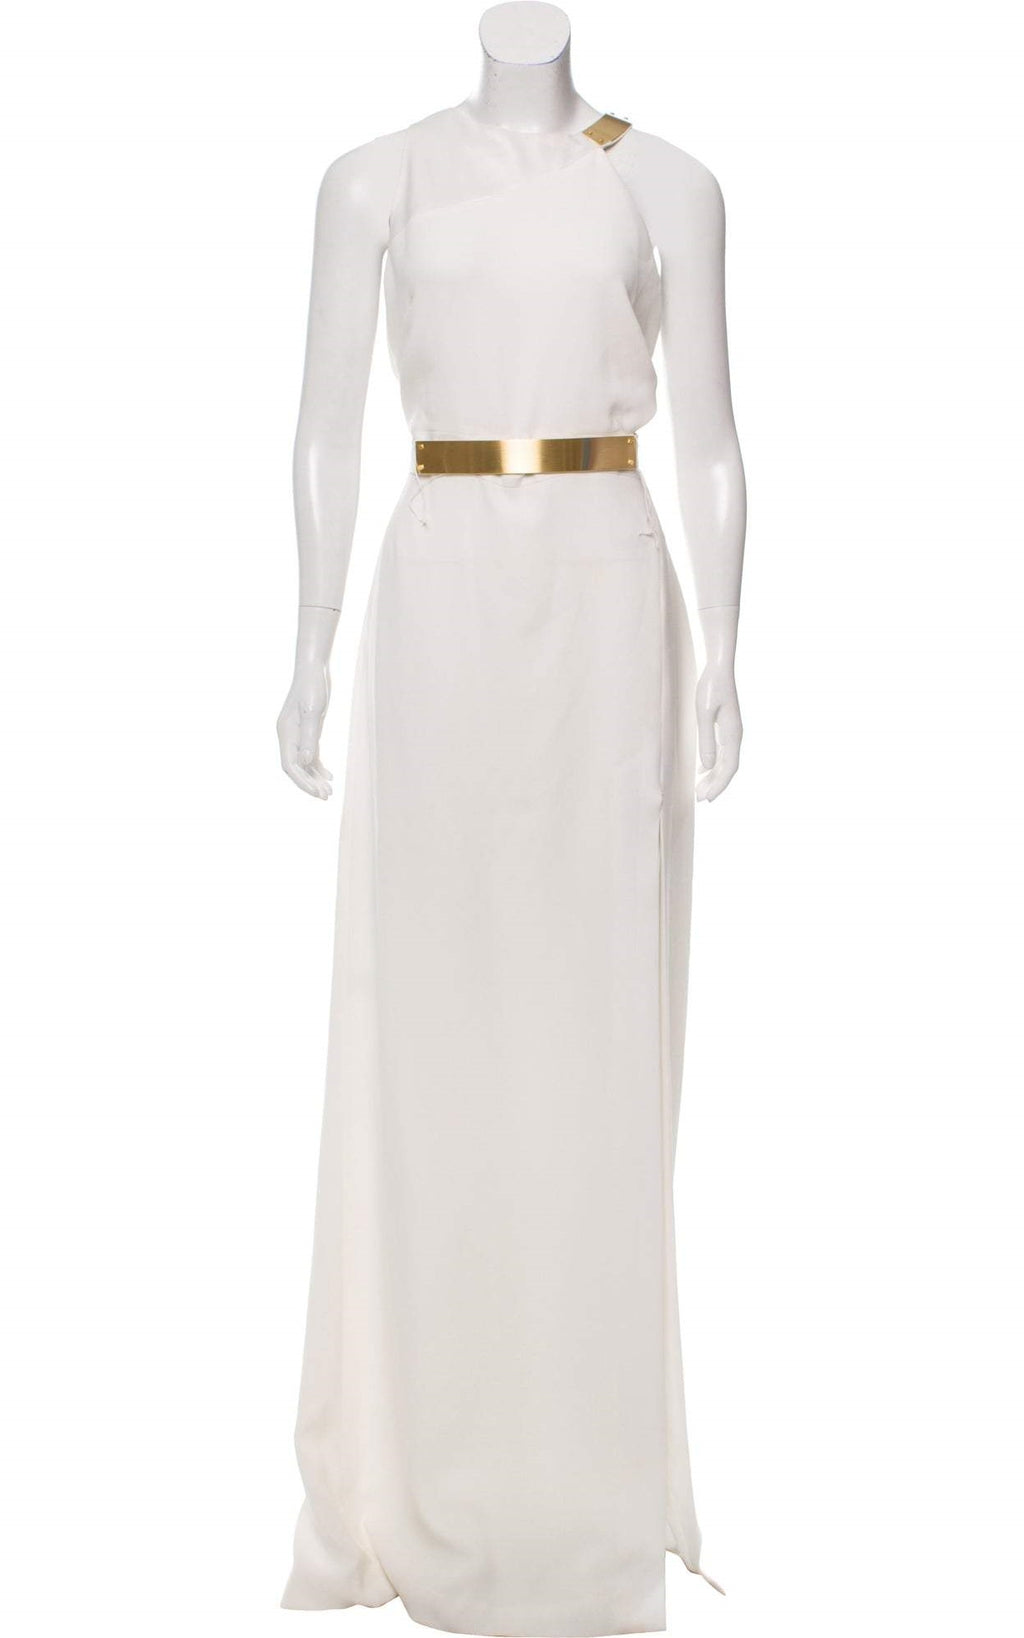 Halston Heritage Ivory Gold-Plated Evening Gown